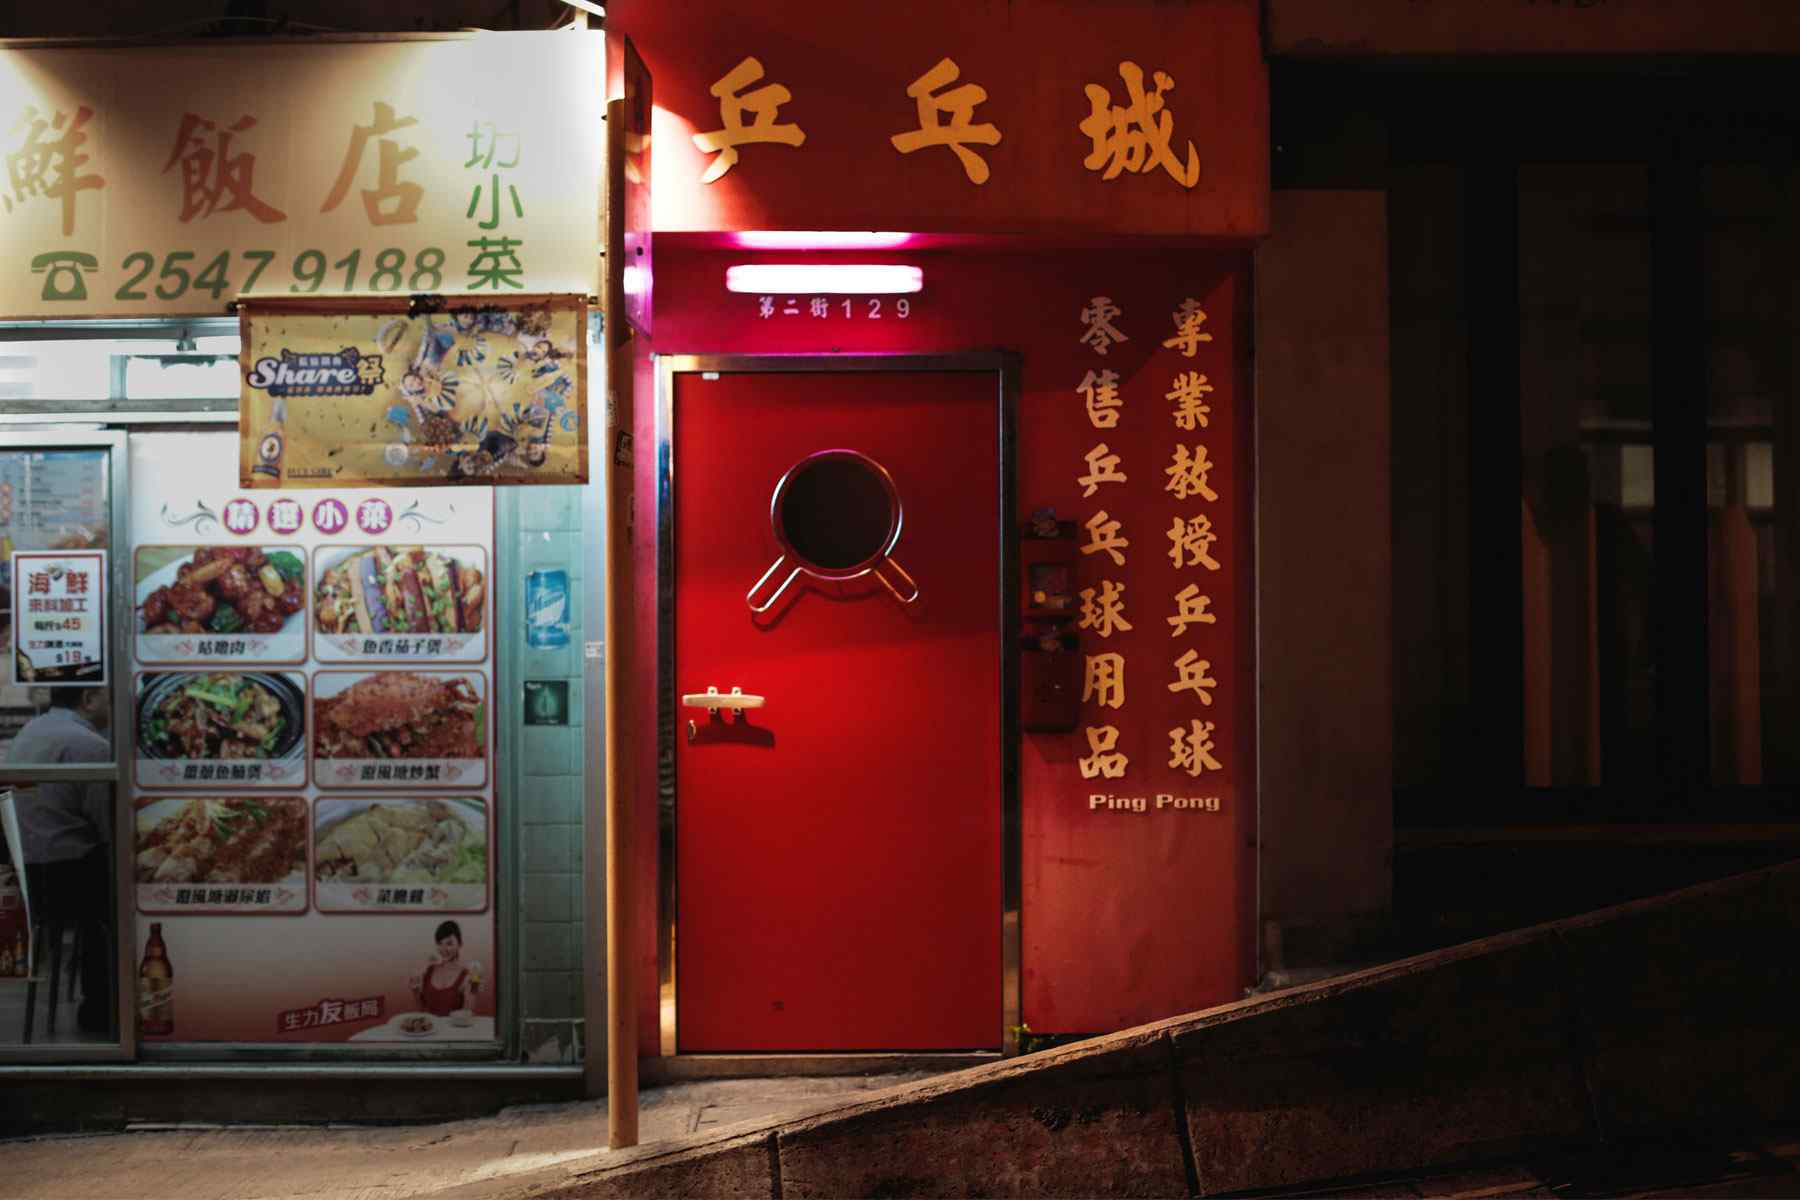 Hong Kong's Hush Hush: How to Get Into the City's Best